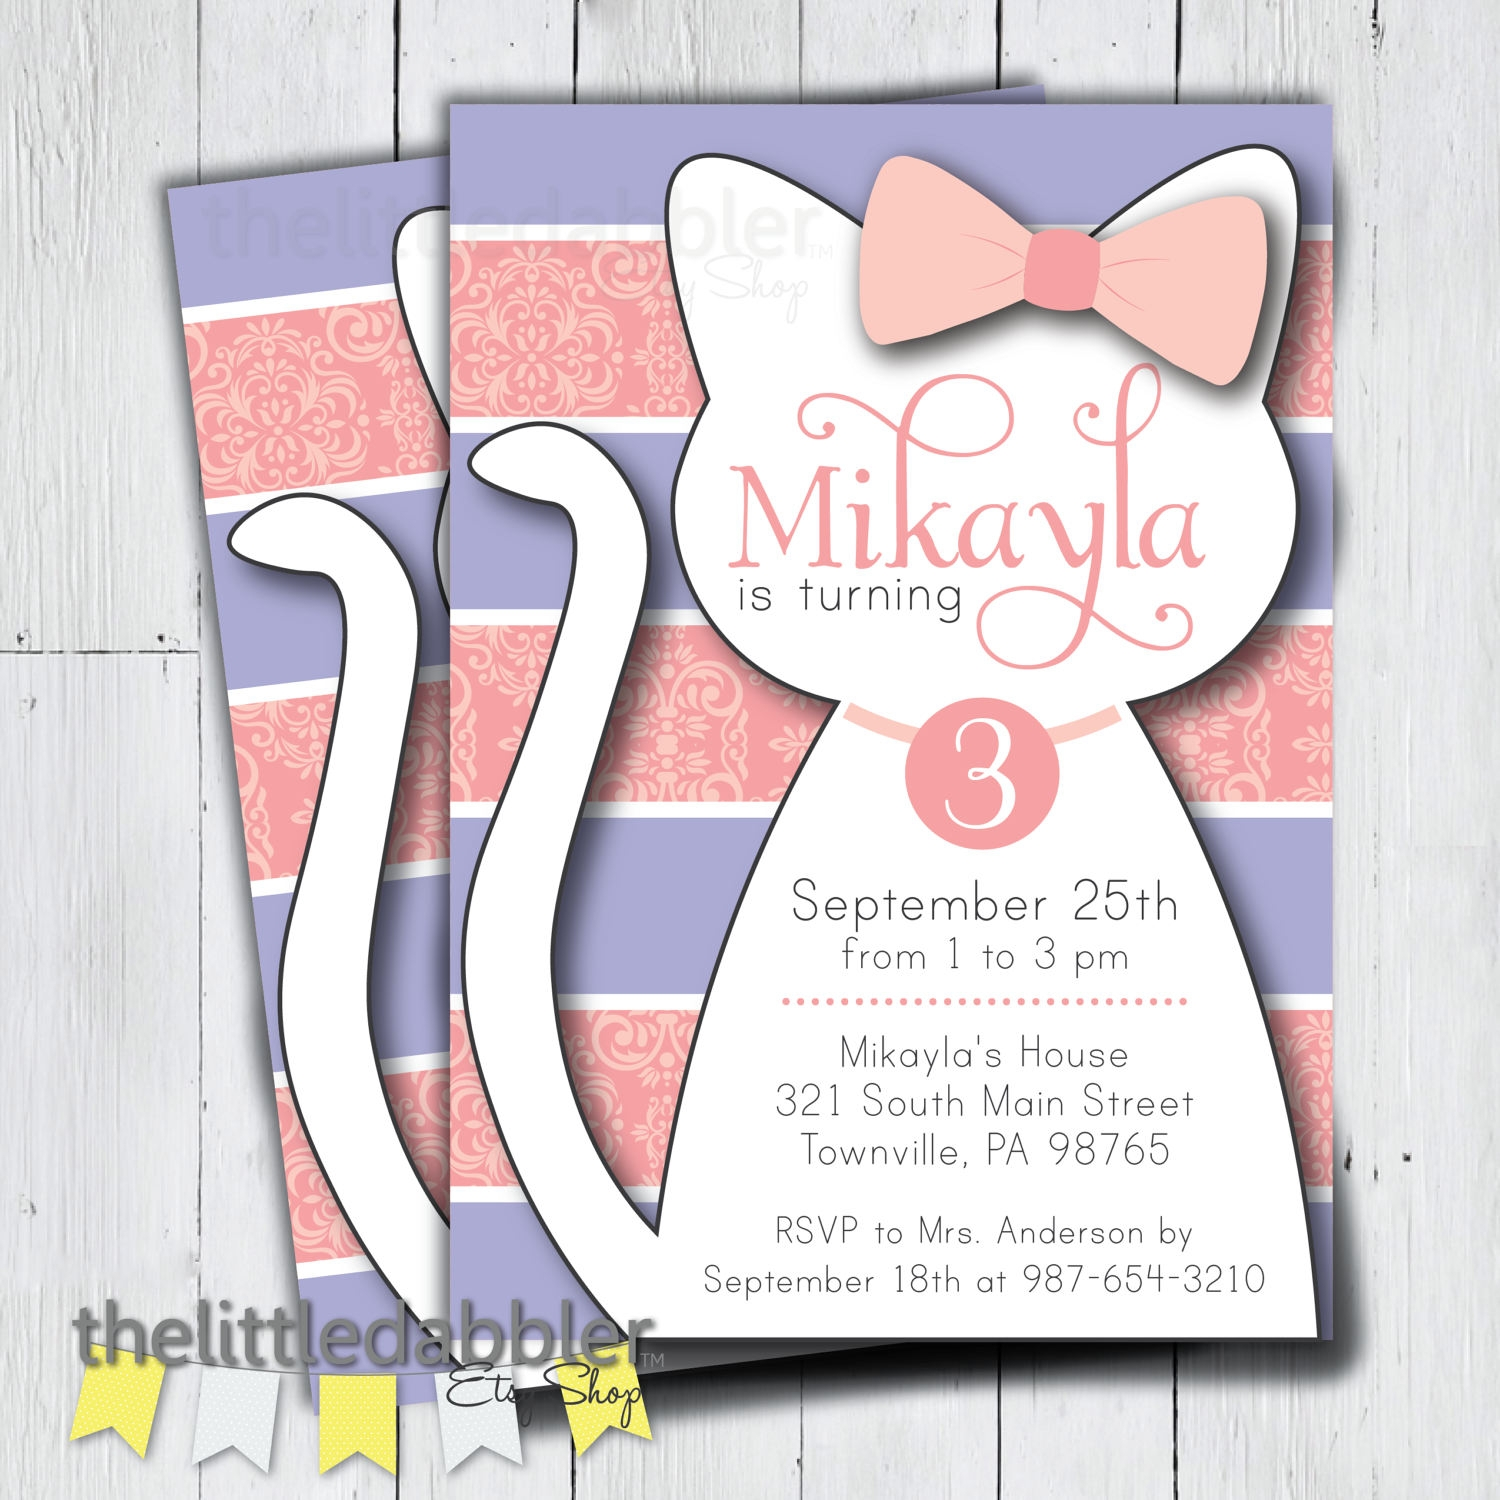 12+ Kitty Party Invitation Designs and Examples - PSD, AI